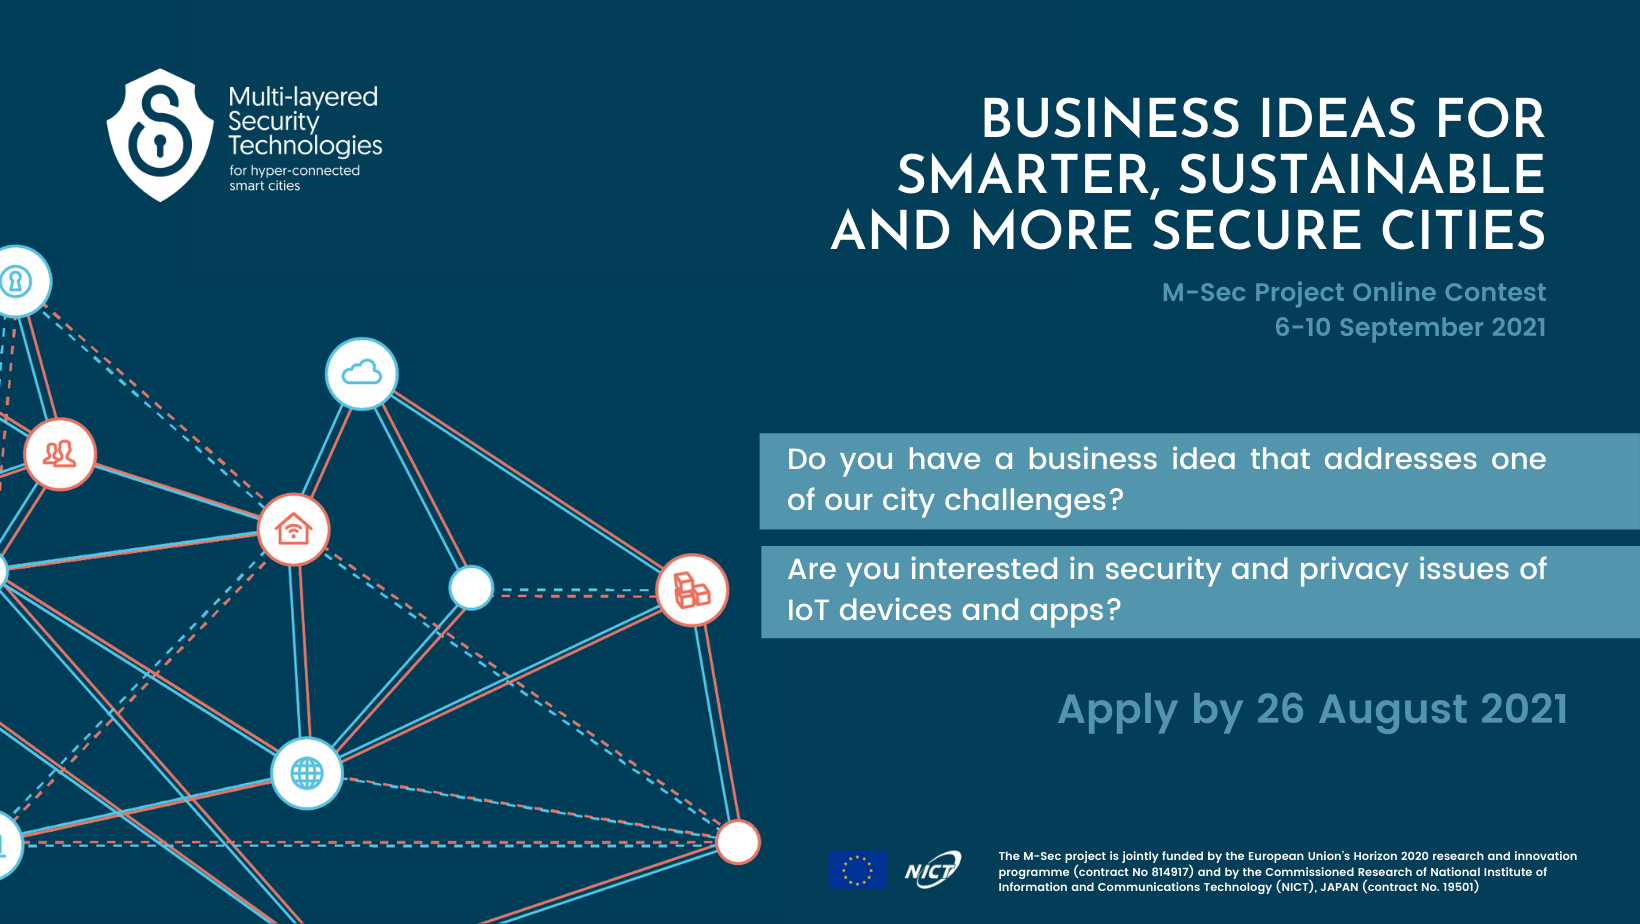 Are you ready for the challenge? Join our M-Sec Online Contest by 26 August